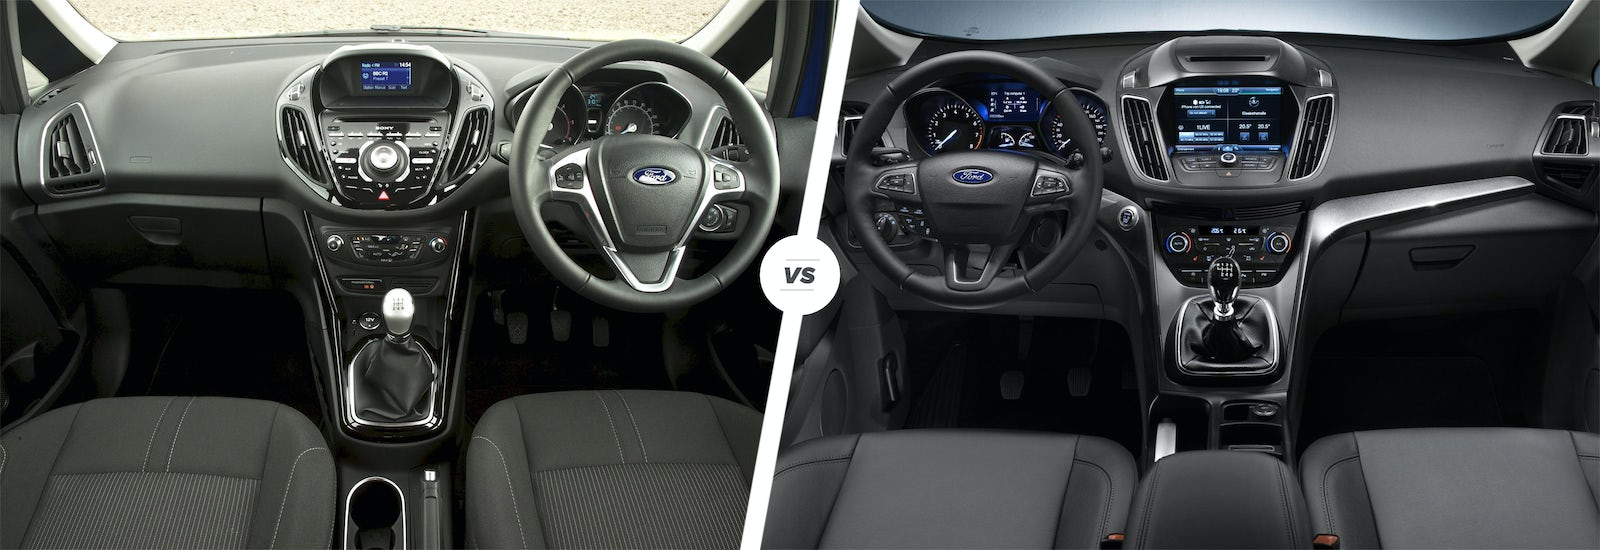 ford b max vs c max mpv face off which wins carwow. Black Bedroom Furniture Sets. Home Design Ideas